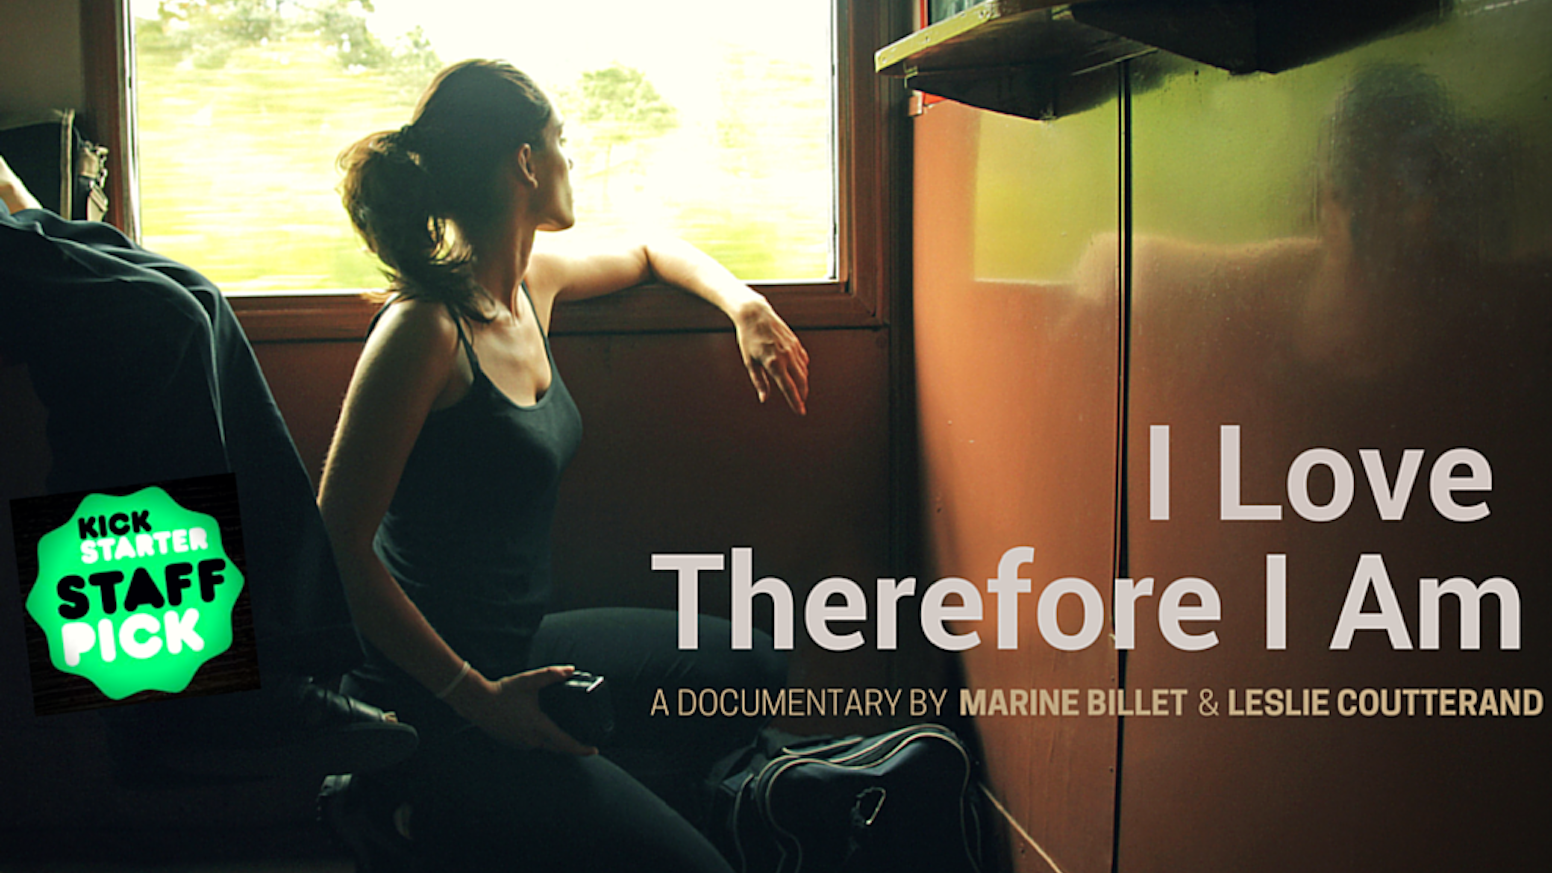 i love therefore i am documentary by leslie coutterand marine billet kickstarter. Black Bedroom Furniture Sets. Home Design Ideas